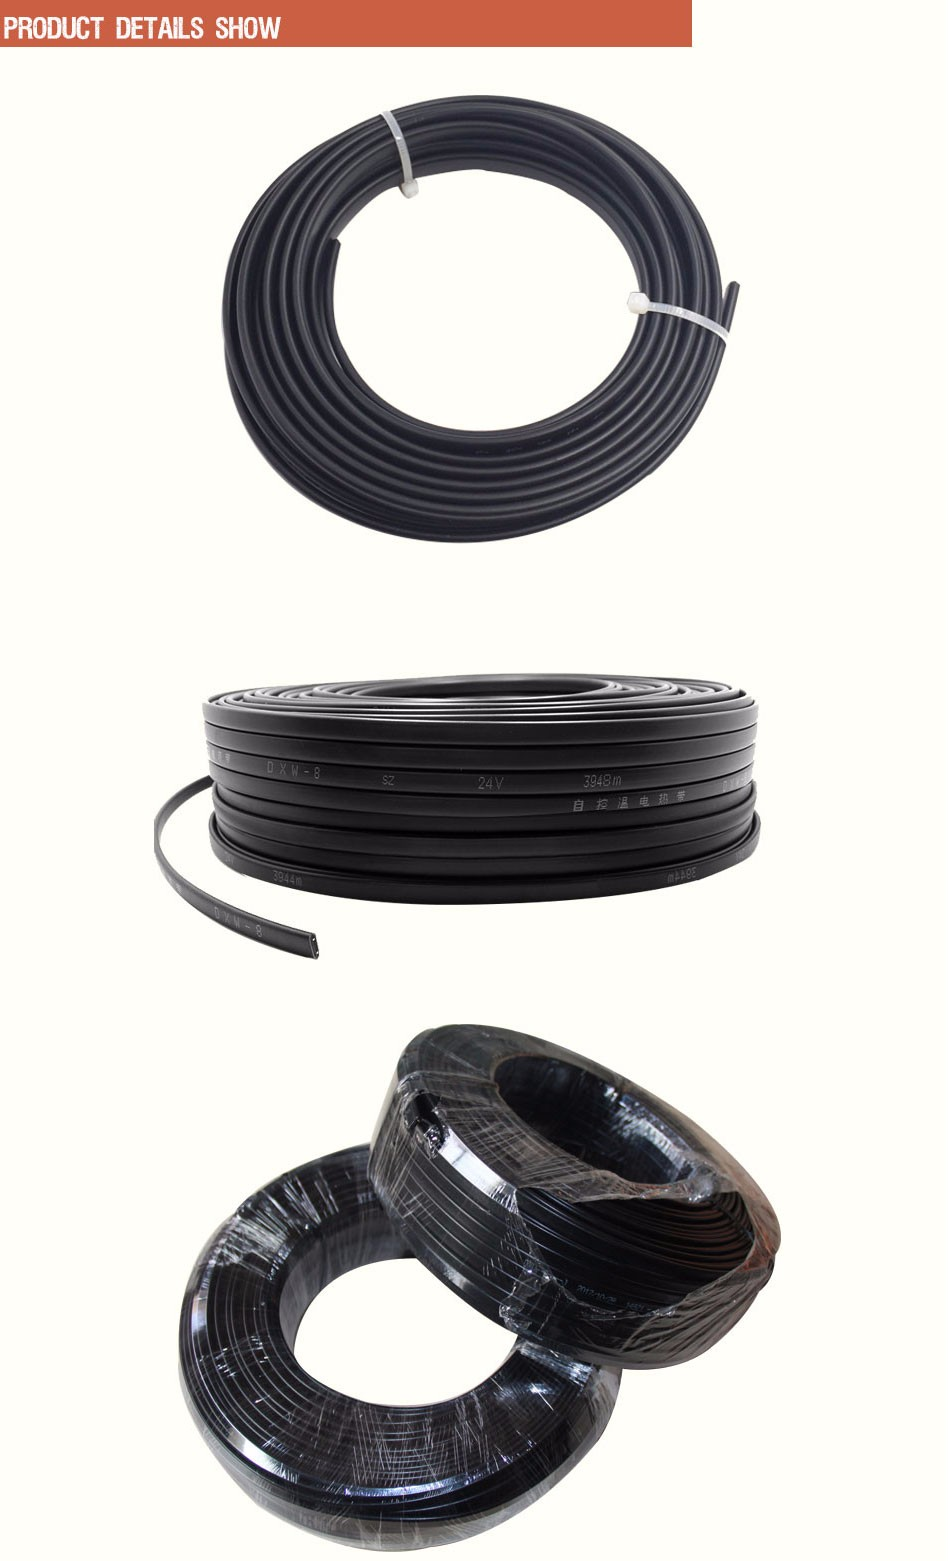 15M/lot Anti-freeze Frost Protection Heating Cable Water Pipe/Roof 230V 8MM 20W/M Self Regulating Electric Heater Copper Wire